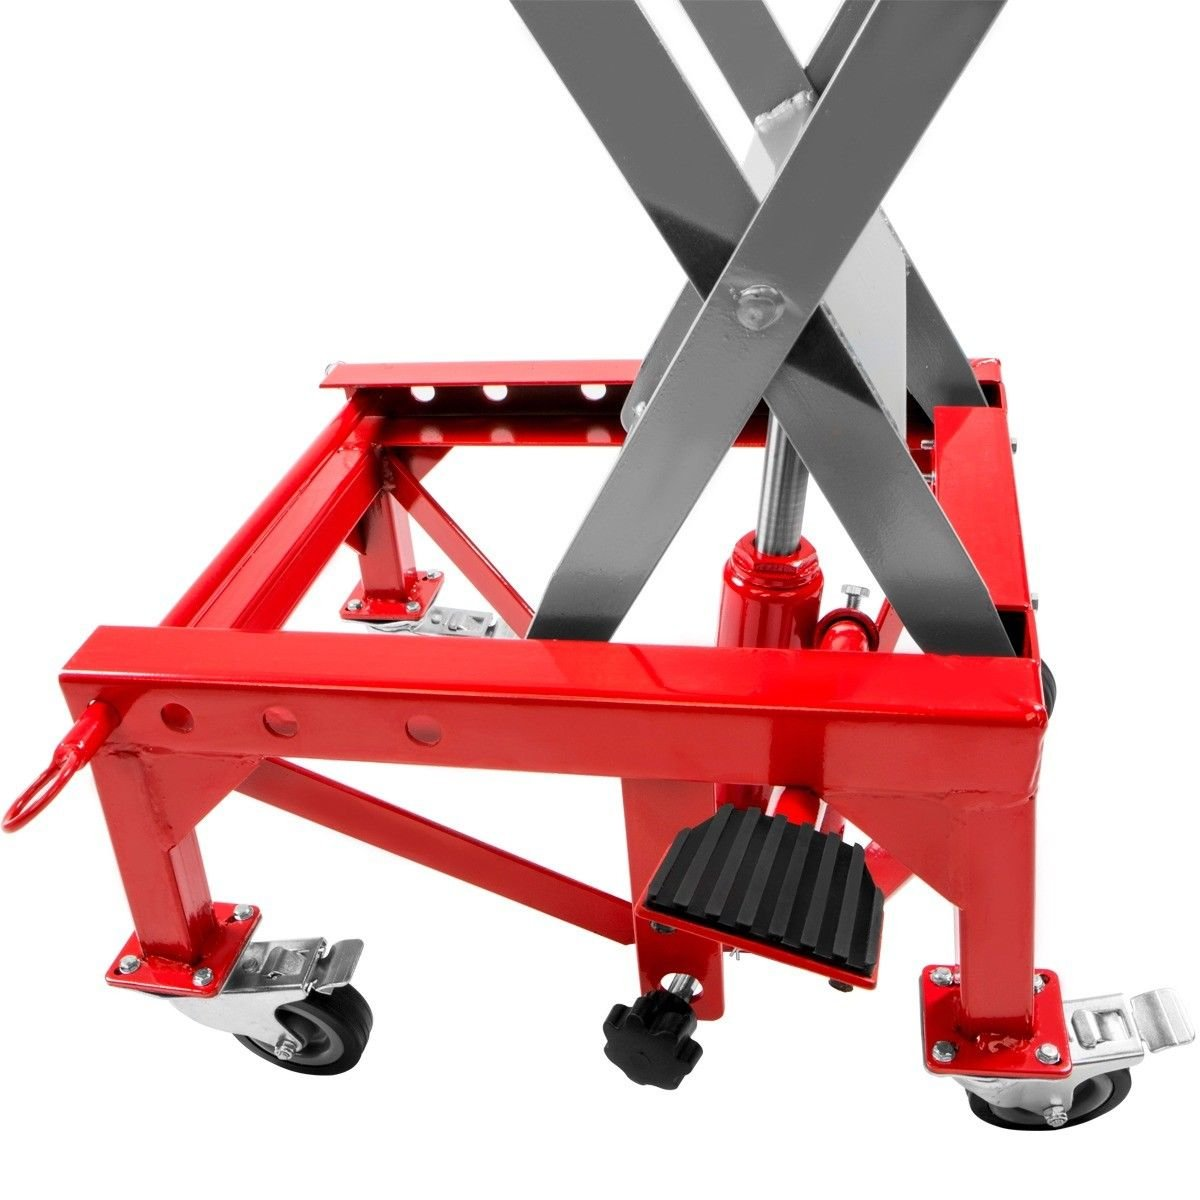 Red XtremepowerUS 300LBS Motorcycle Dirt Bike ATV Motorcycle Bike Scissor Jack Lifts Hoist Mini Crank Hydraulic Foot Operated Lift